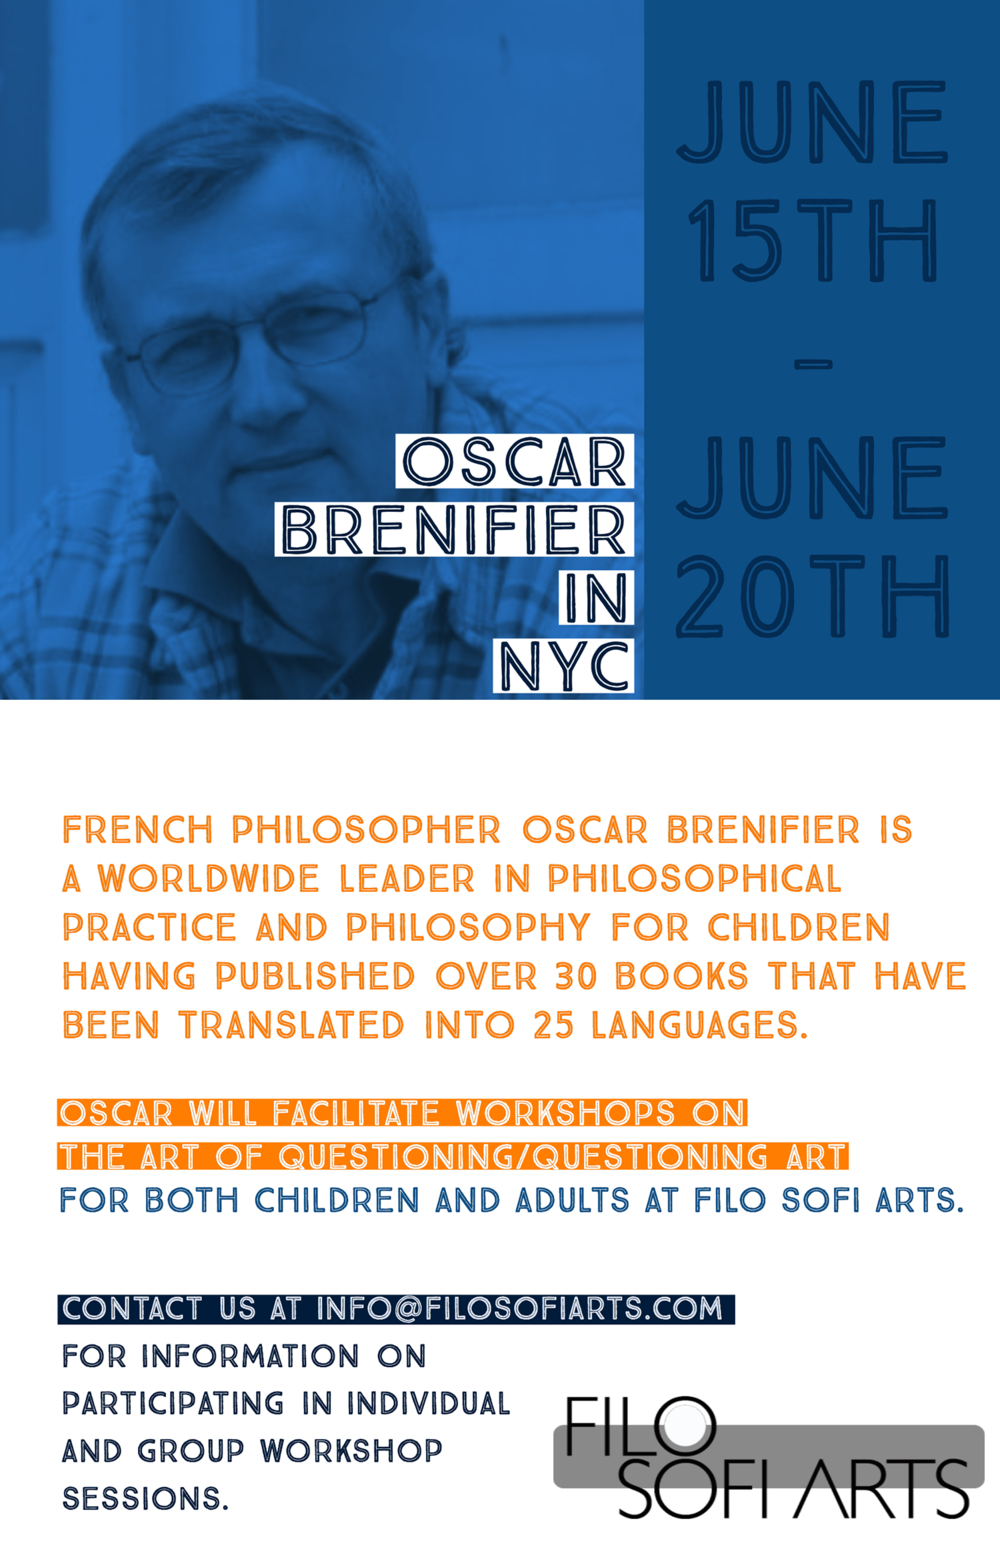 Workshops on the art of questioning at Filo Sofi Arts Gallery in NYC by worldwide philosopher Oscar Brenifier.